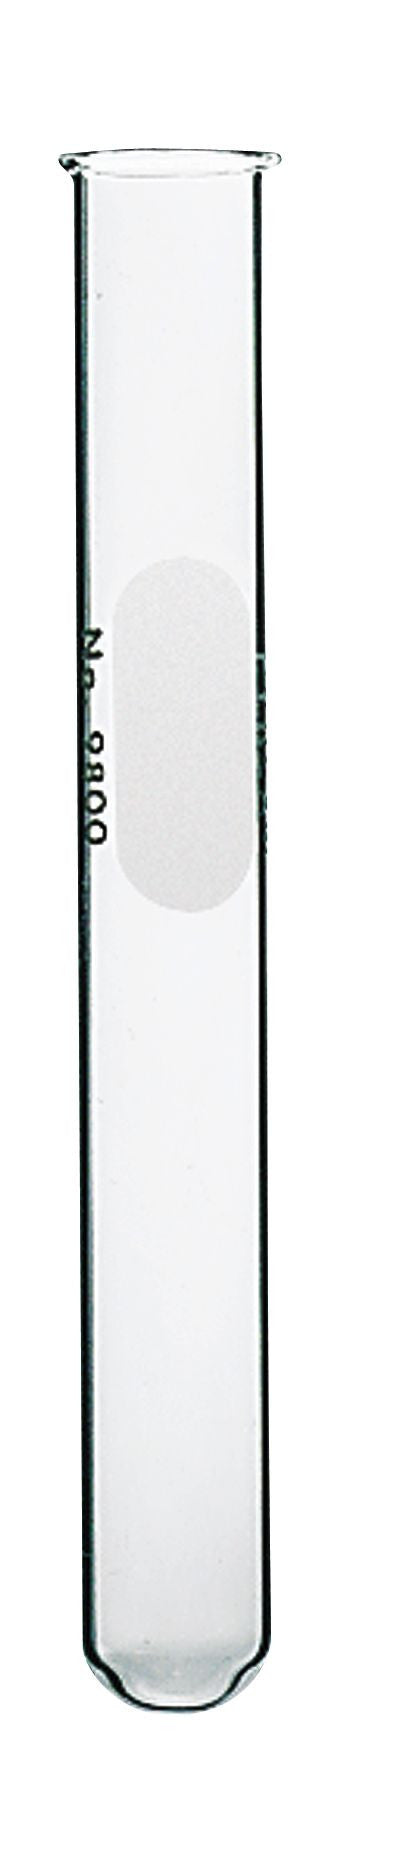 PYREX® 55mL Test Tubes, 25x150mm ~ Glass 6/pk